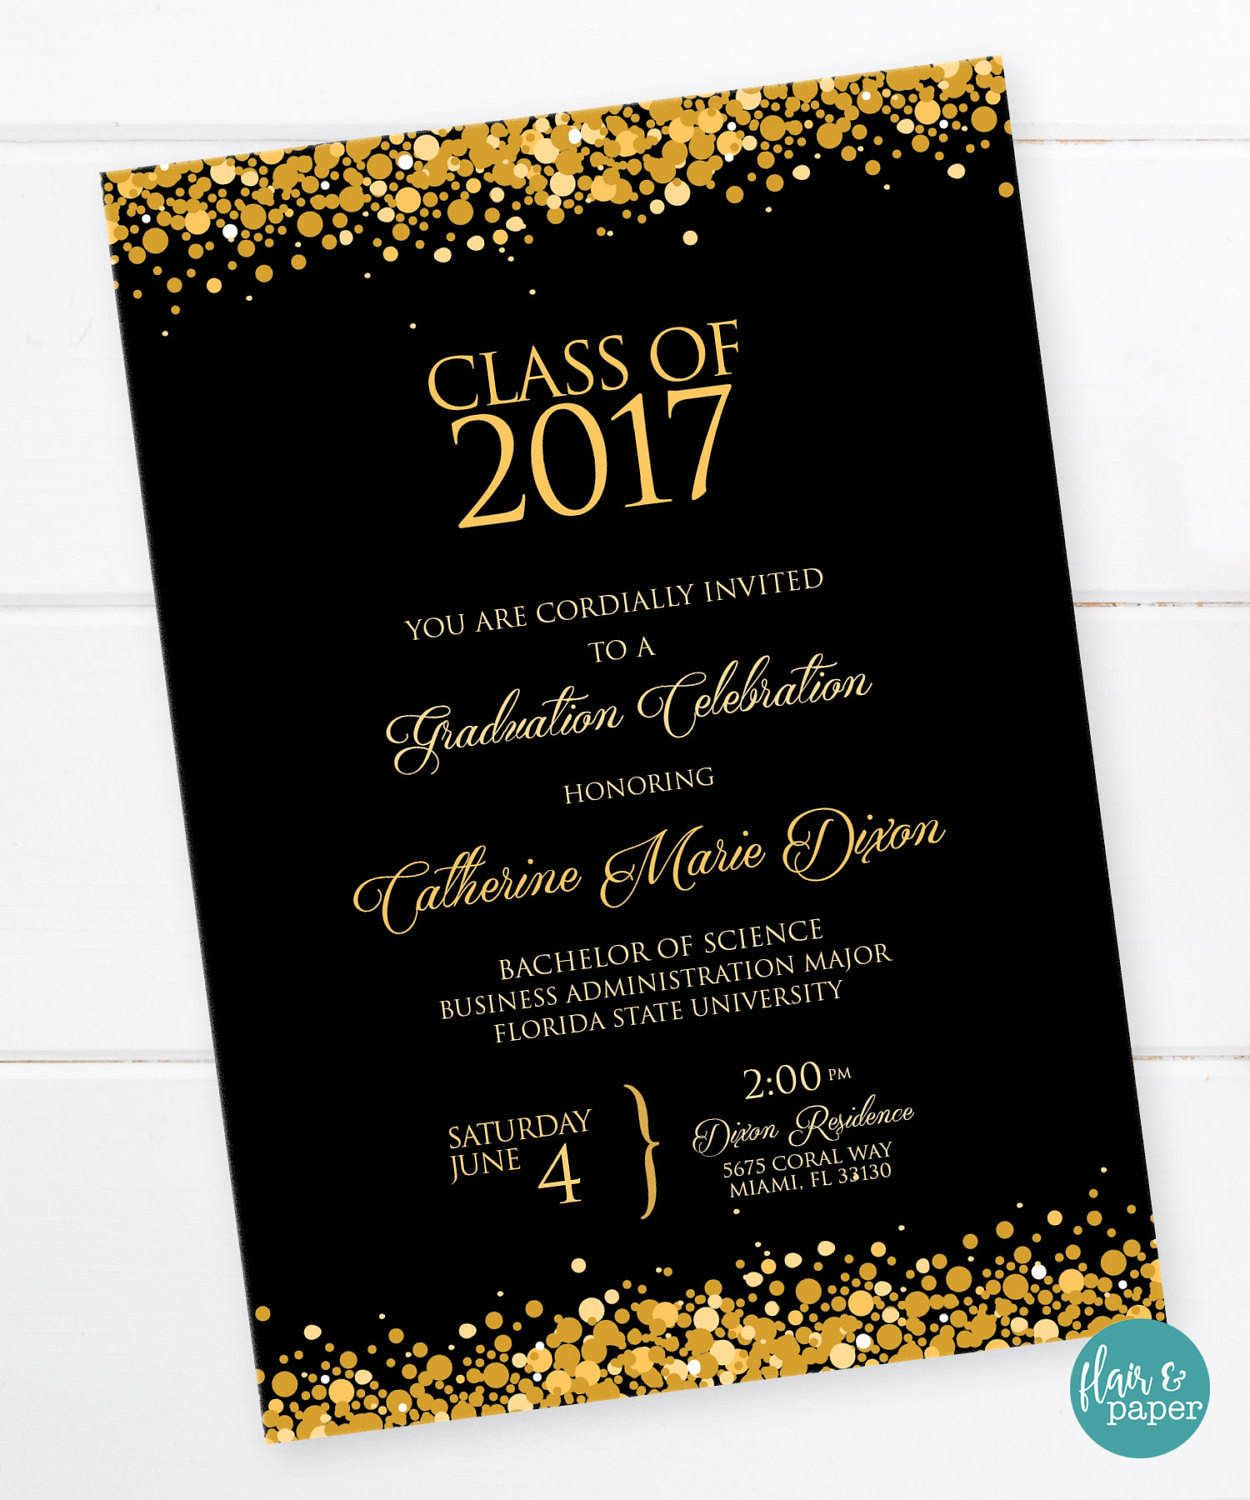 001 Shocking College Graduation Invitation Template Idea  Templates Free PartyFull